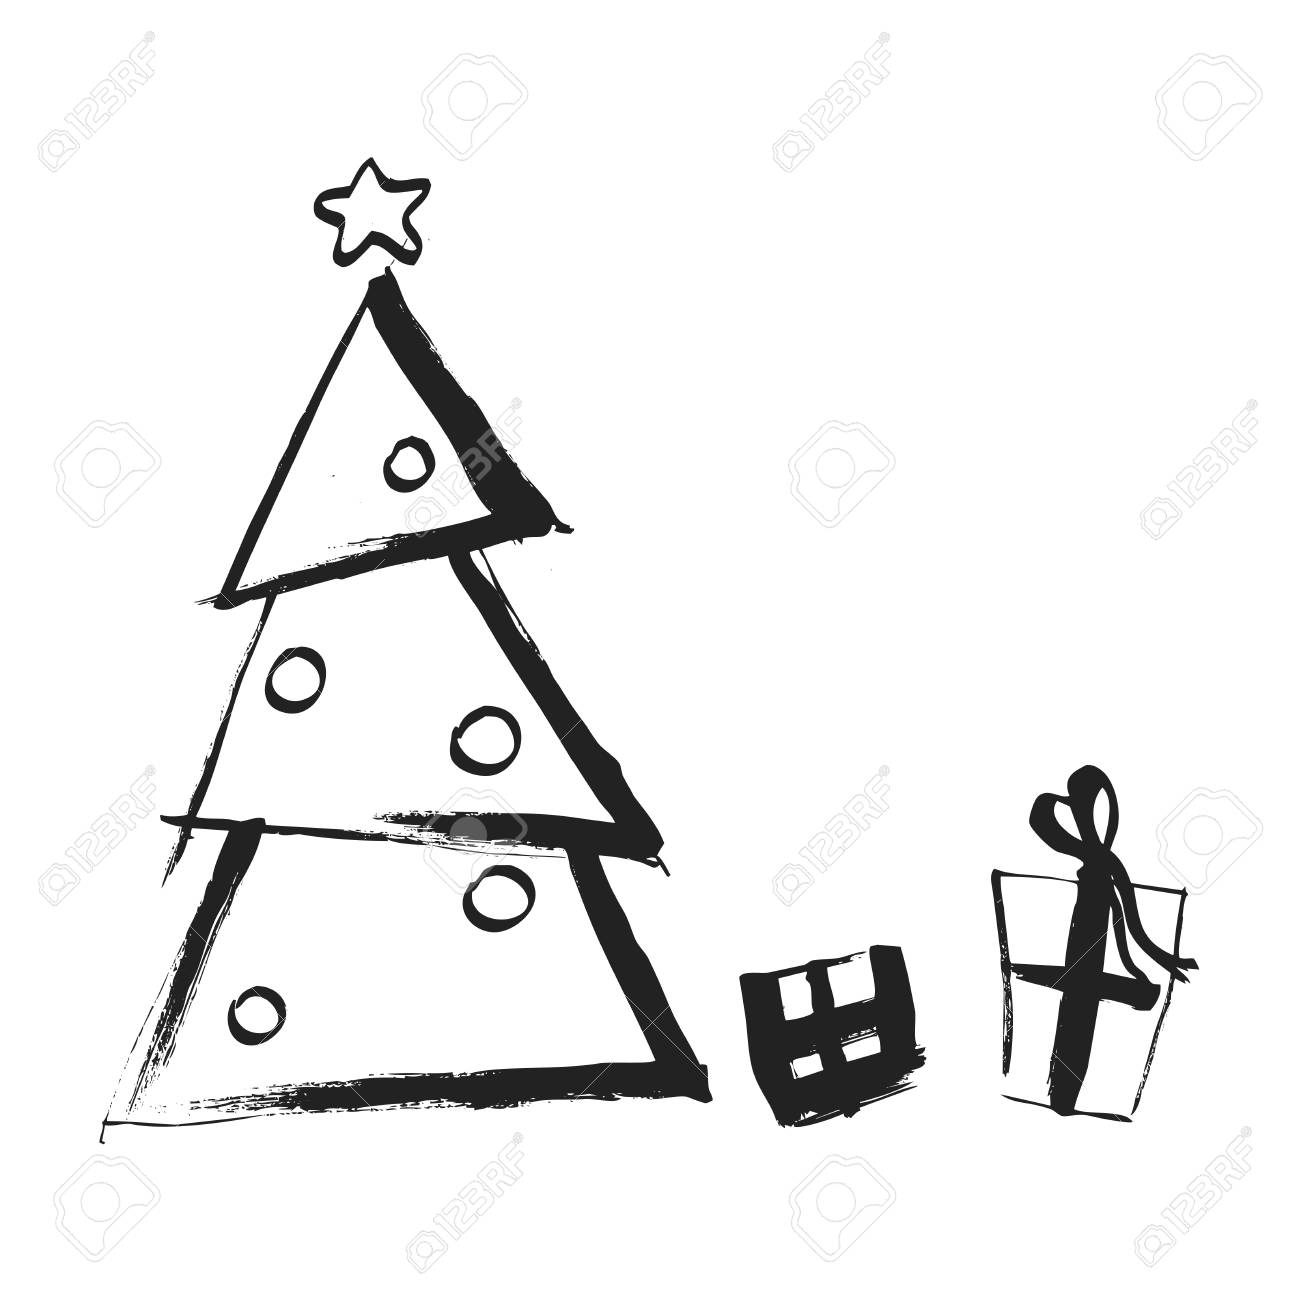 Black And White Christmas.Handdrawing Christmas Tree With Boxes Of Gifts Black And White